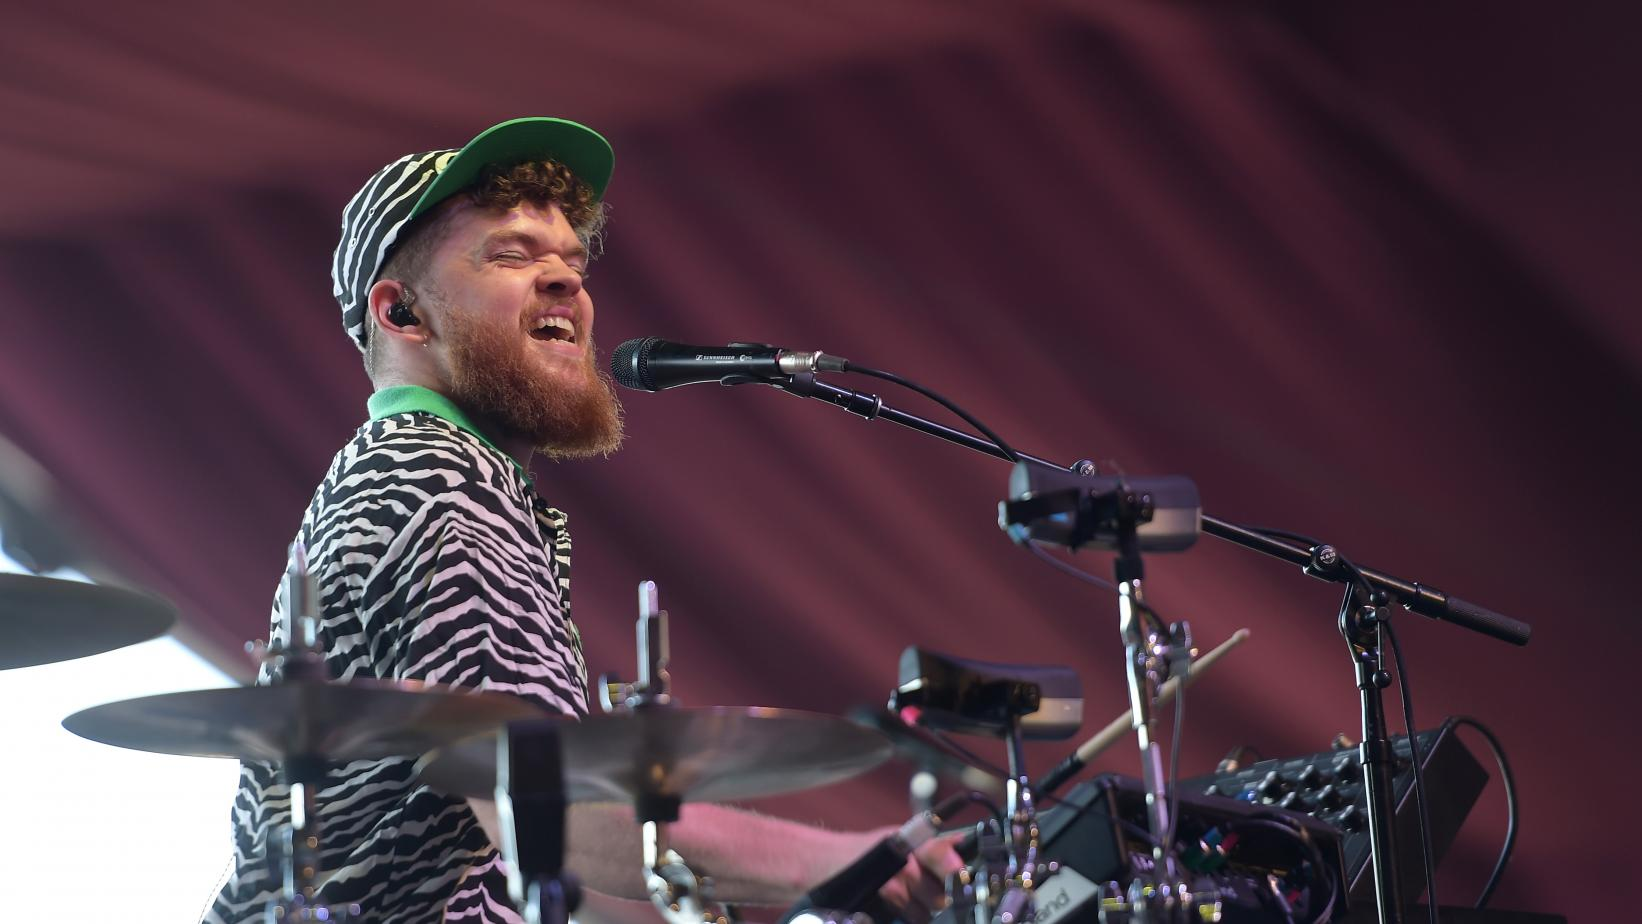 Jack Garratt performs at 2017 Coachella